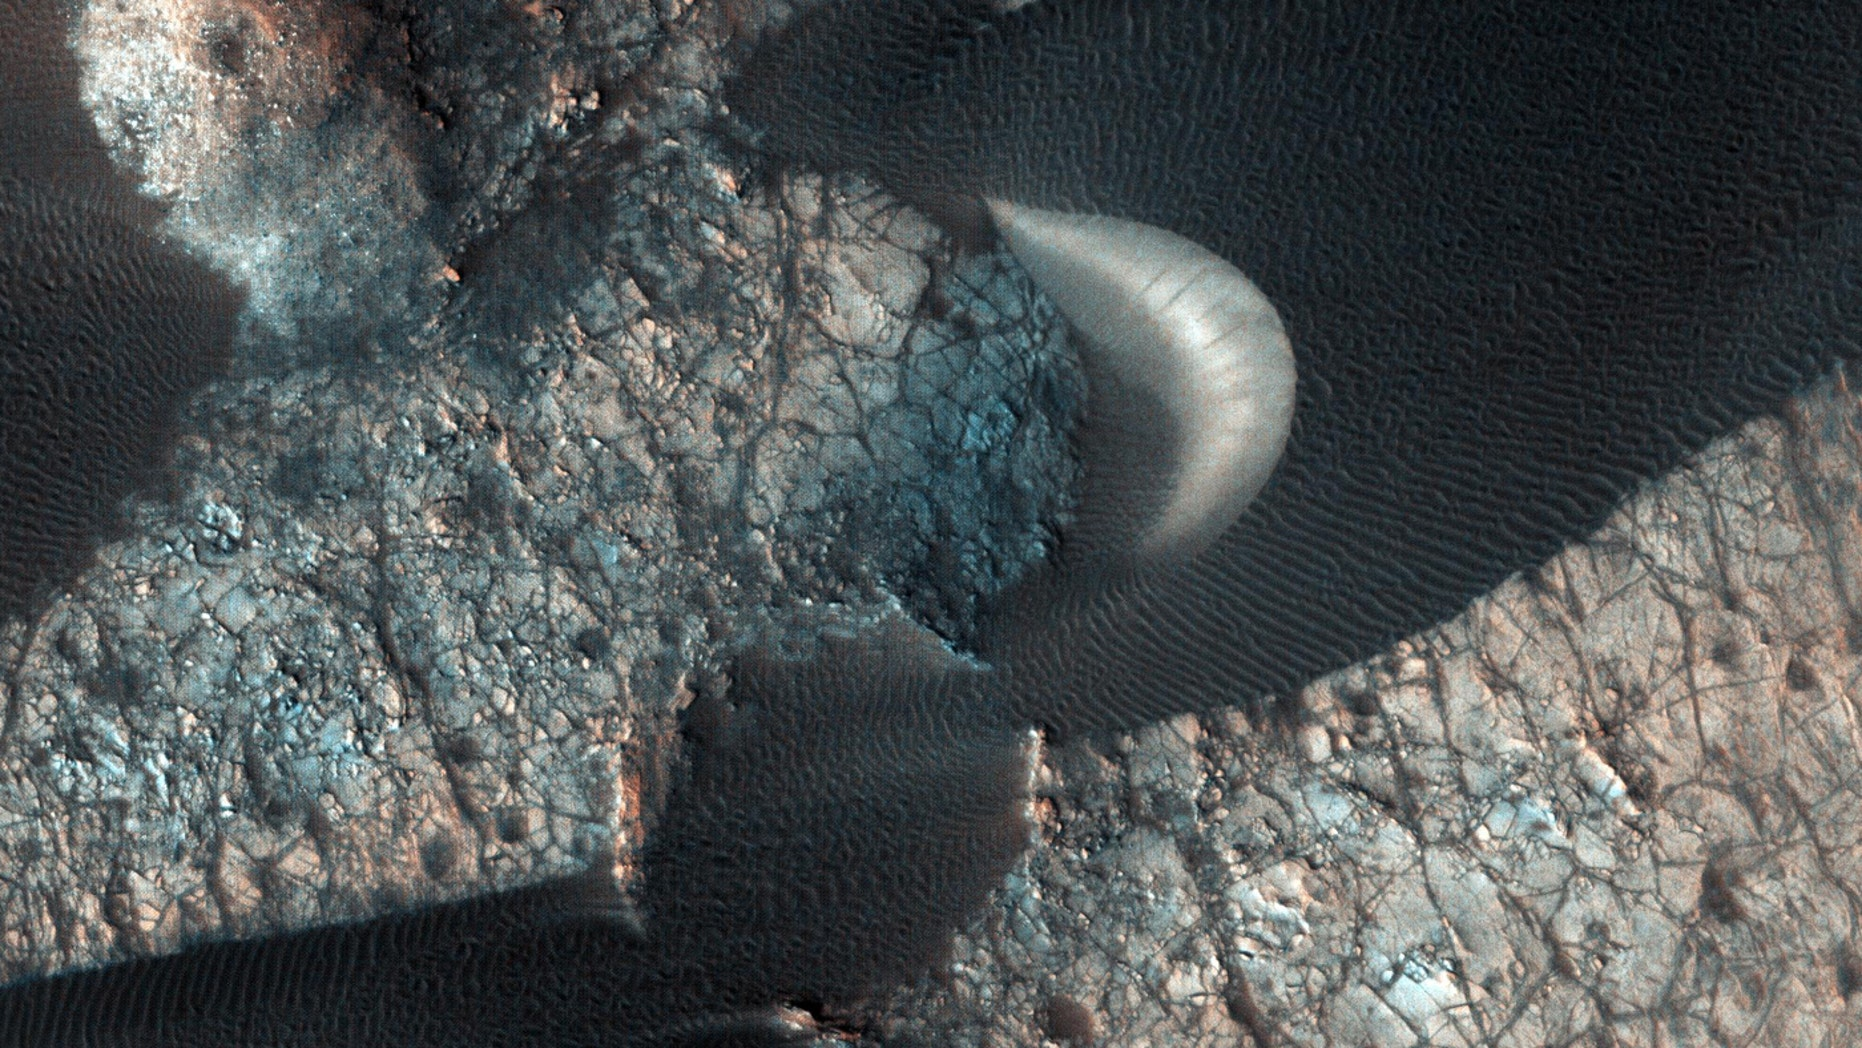 Sand dunes are seen on Mars in this image released by NASA